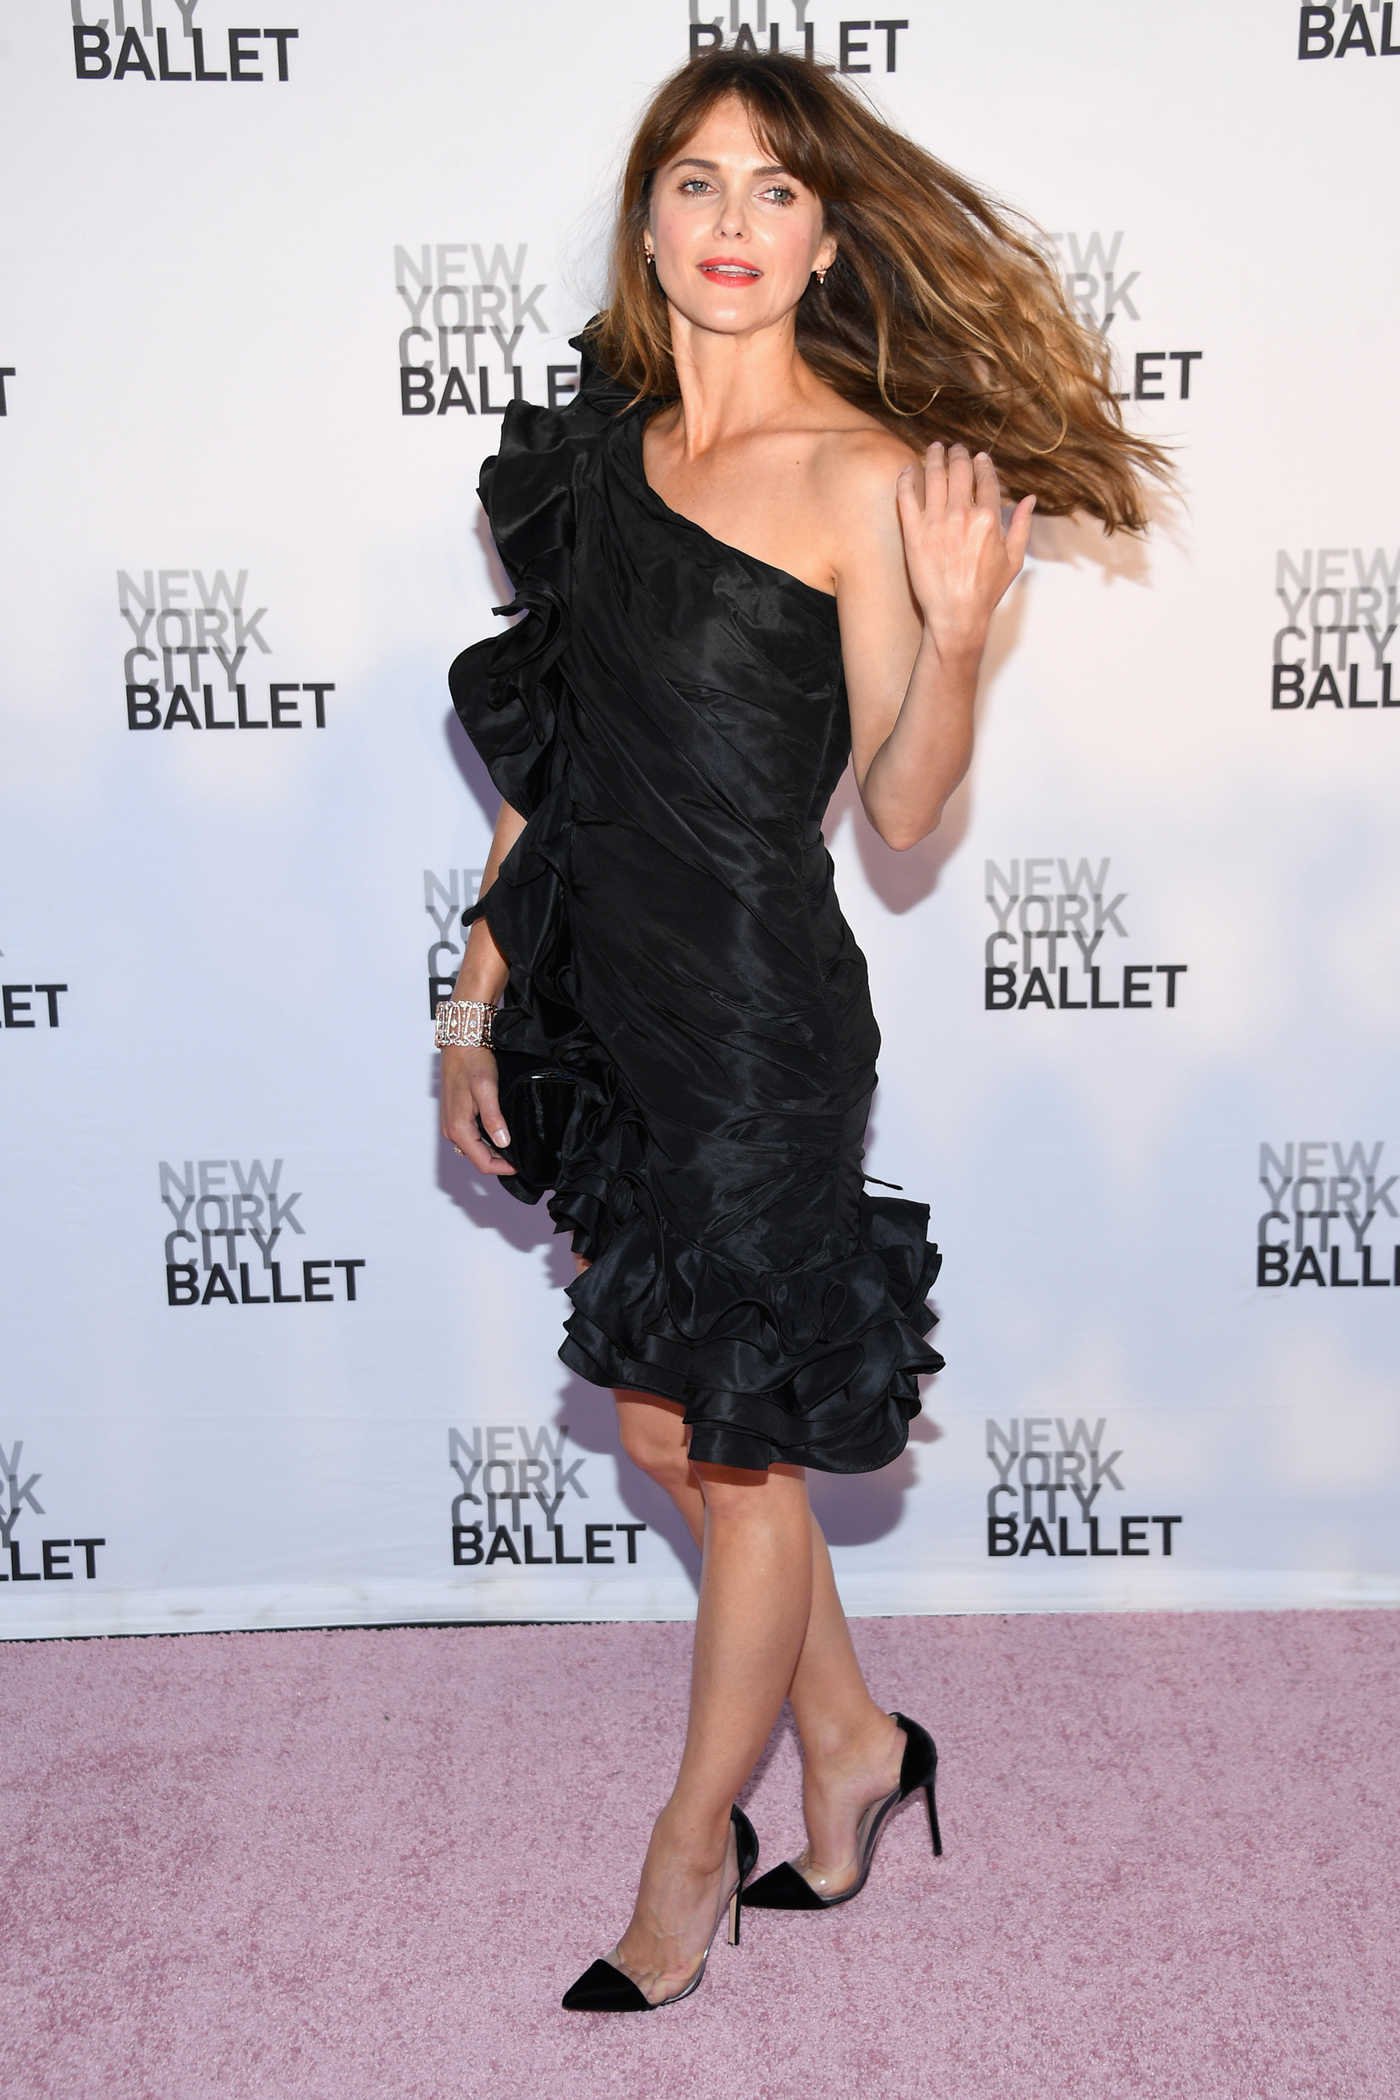 Keri Russell at New York City Ballet's 2017 Fall Fashion Gala in New York 09/28/2017